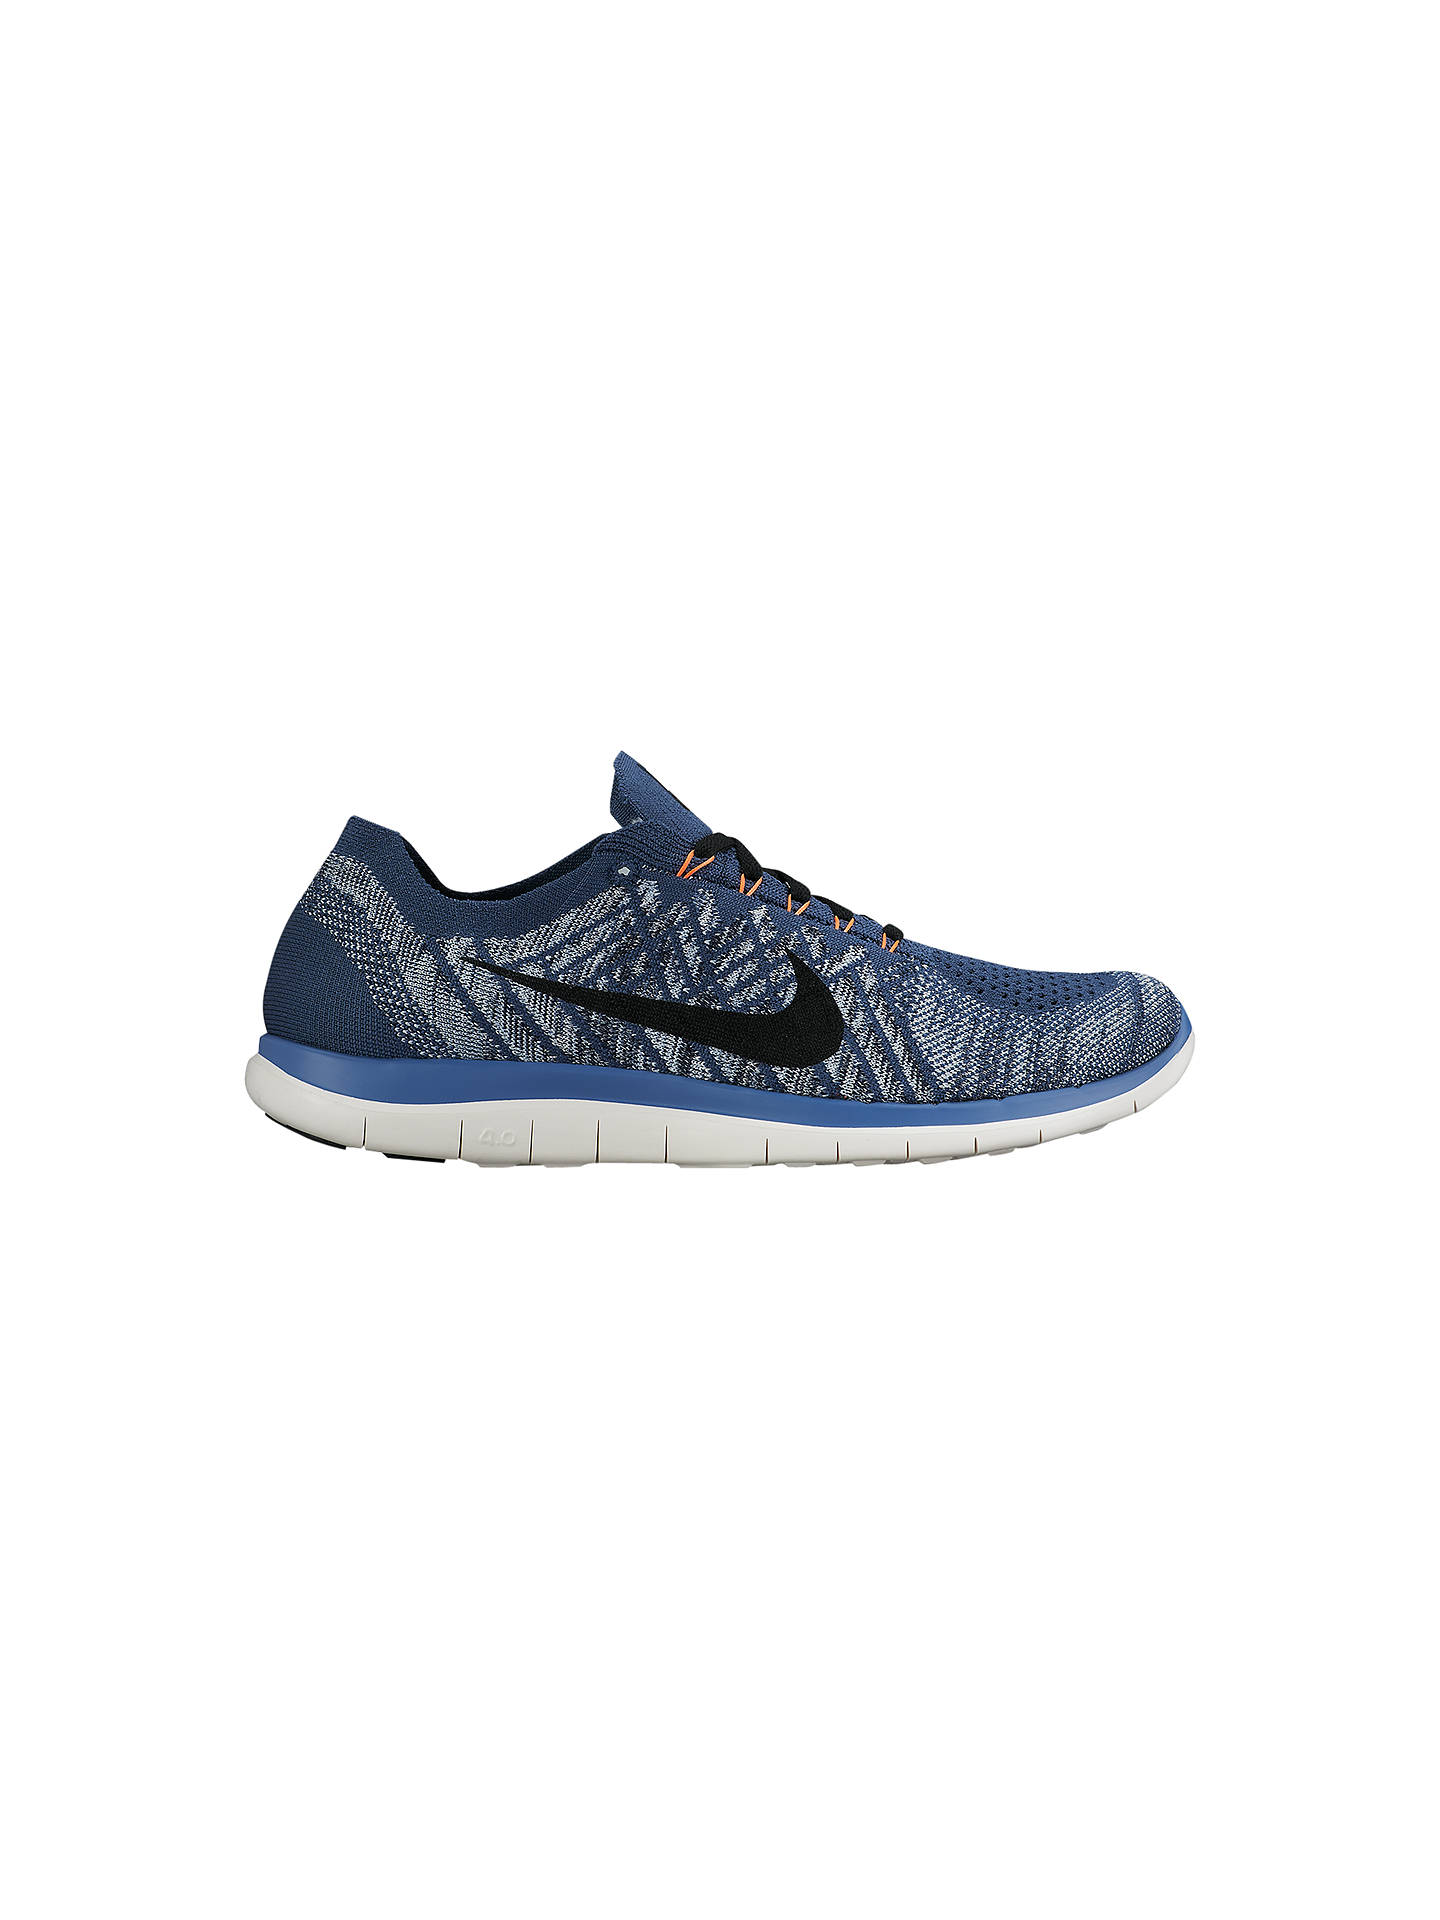 competitive price 081aa 3ad56 Buy Nike Free 4.0 Flyknit Men s Running Shoes, Squadron Blue, 7 Online at  johnlewis ...